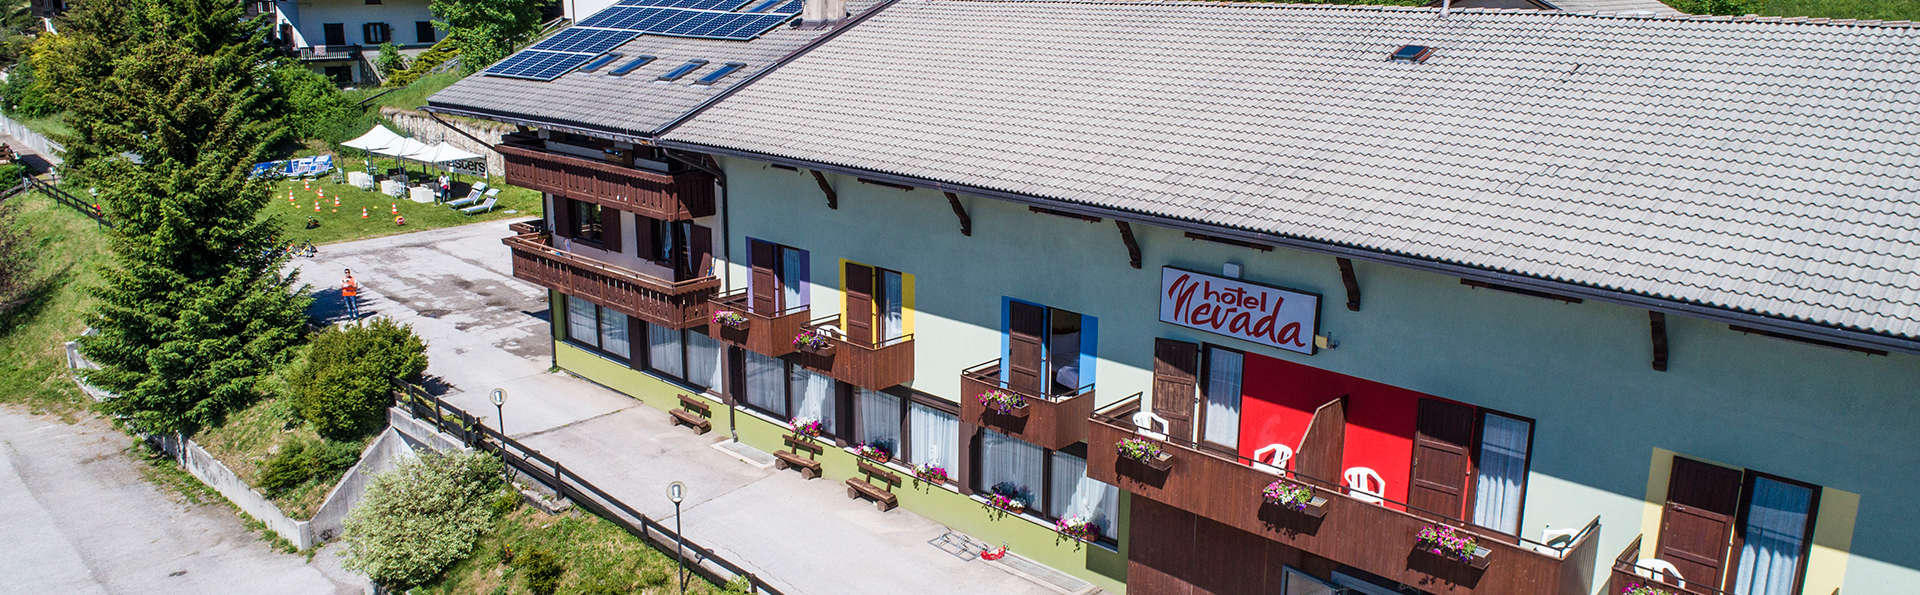 Hotel Villaggio Nevada - EDIT_NEW_aerea2.jpg